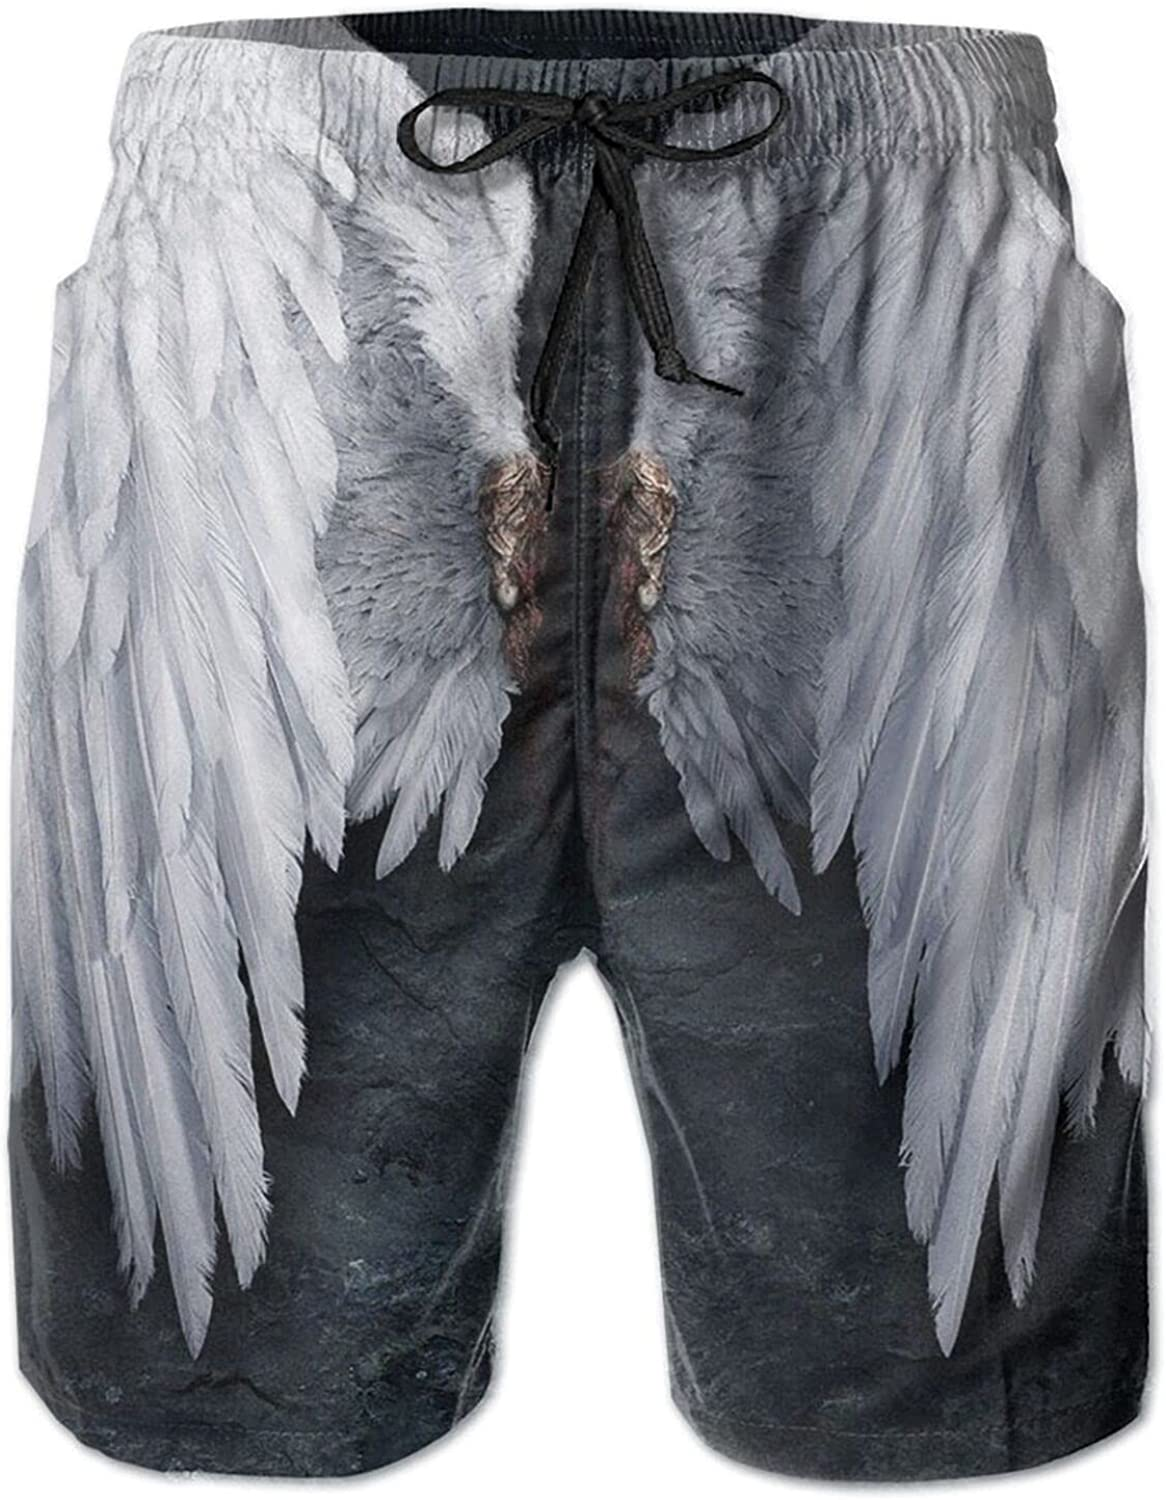 Yt92Pl@00 Men's 100% Polyester Feathered Angel Wings of Ranking TOP10 Max 45% OFF Beachwea